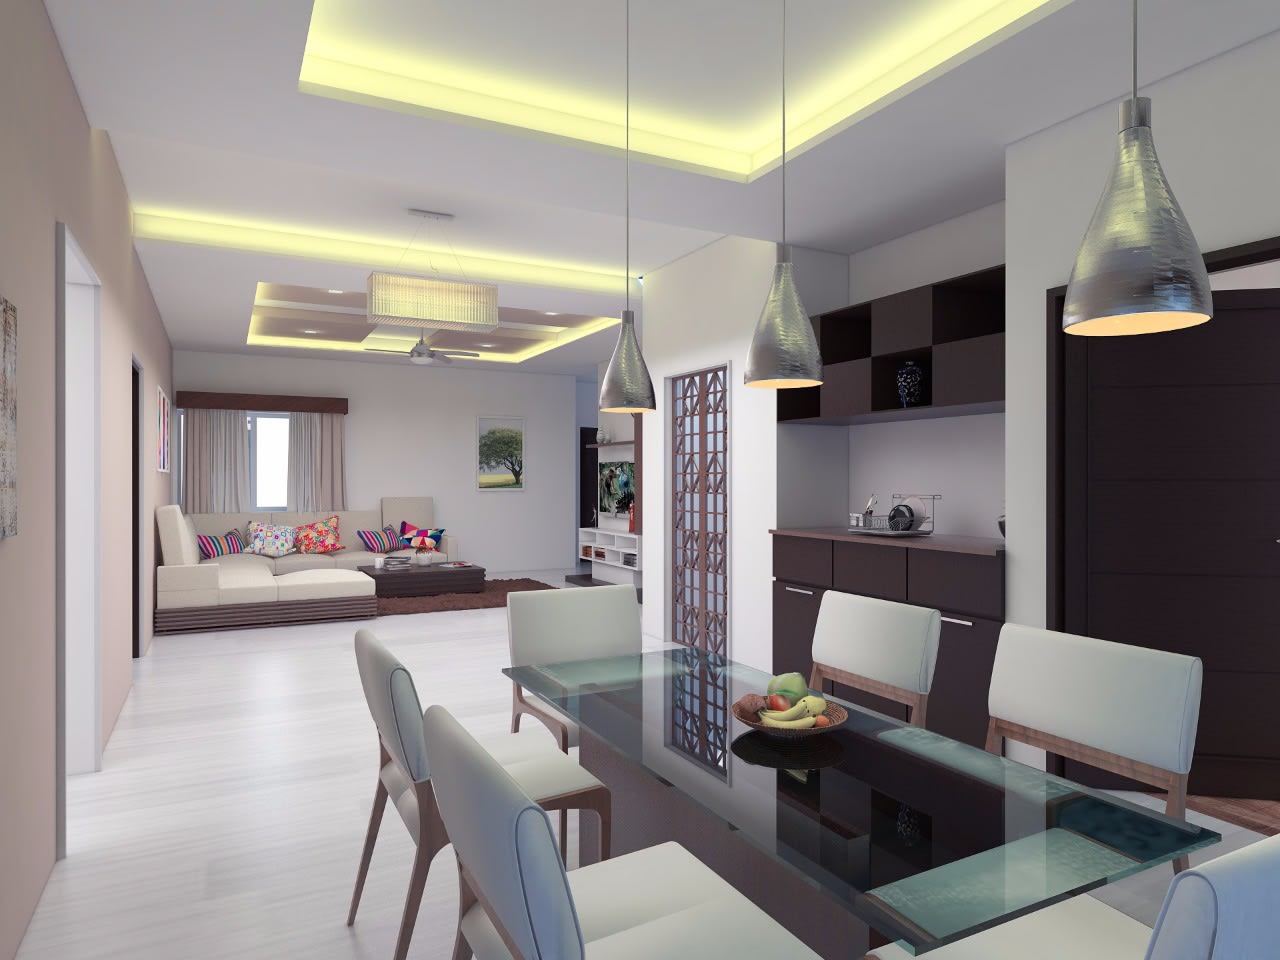 Pearl White Dining Room With Hanging Light by Jerry Meshach J Dining-room Modern | Interior Design Photos & Ideas